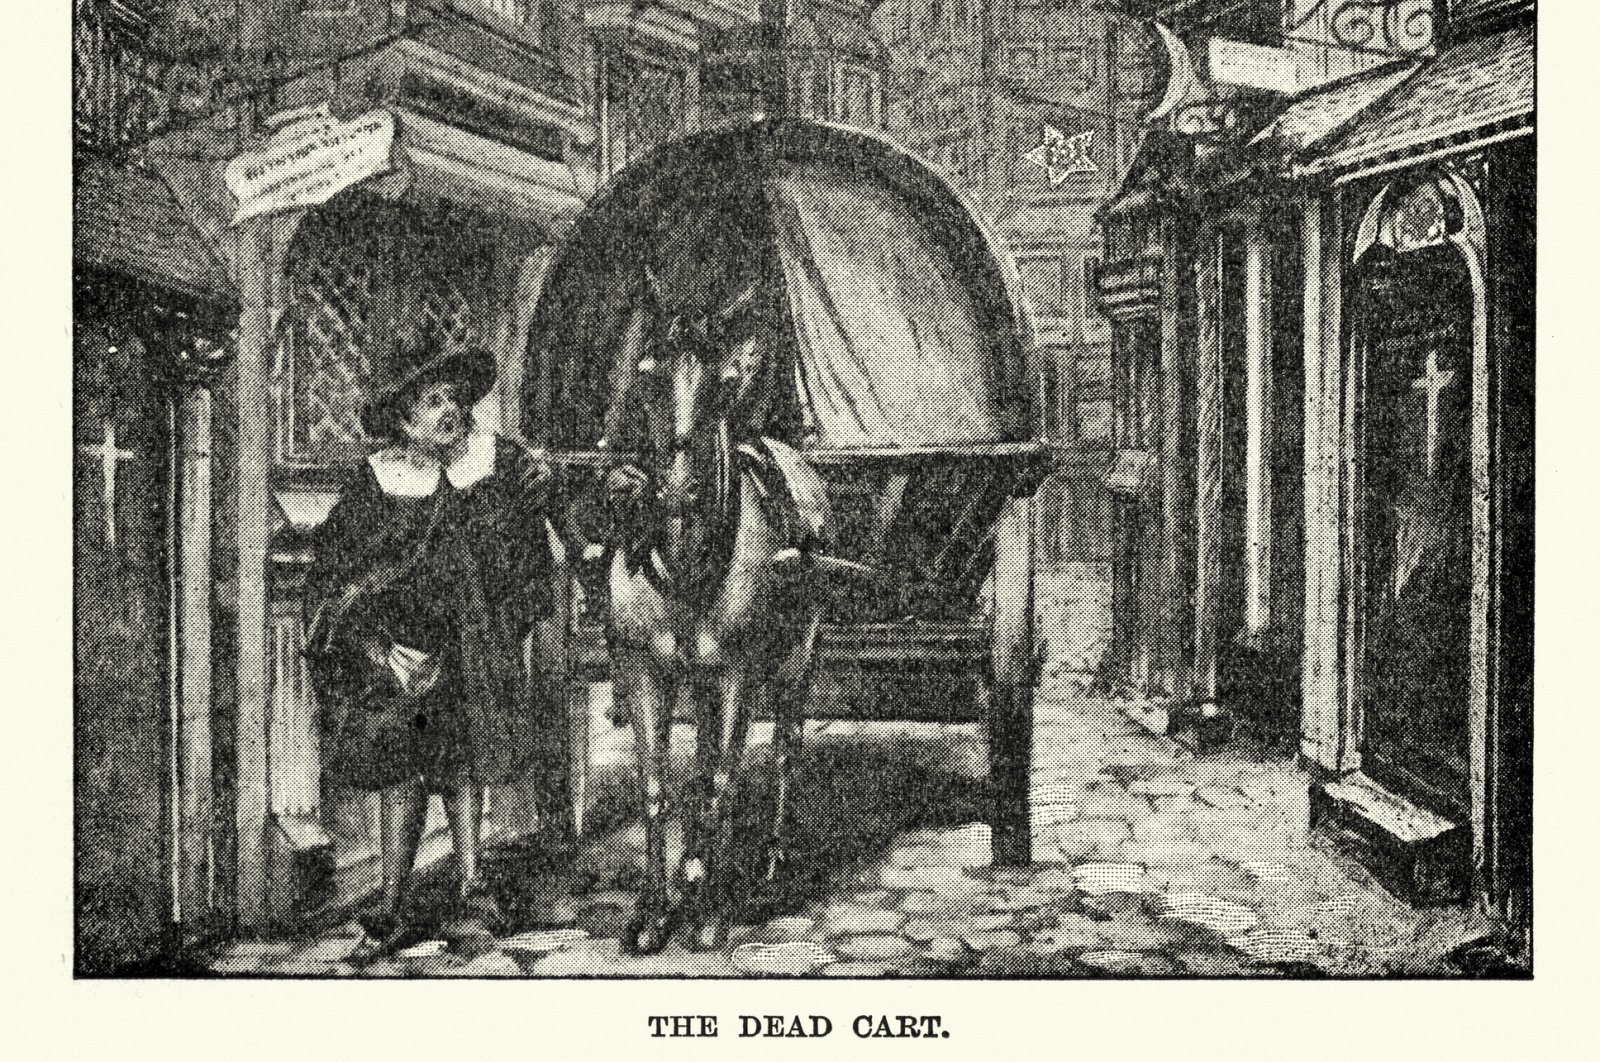 Vintage engraving of a death cart collecting the bodies of victims during the Great Plague of London. (iStock Photo)